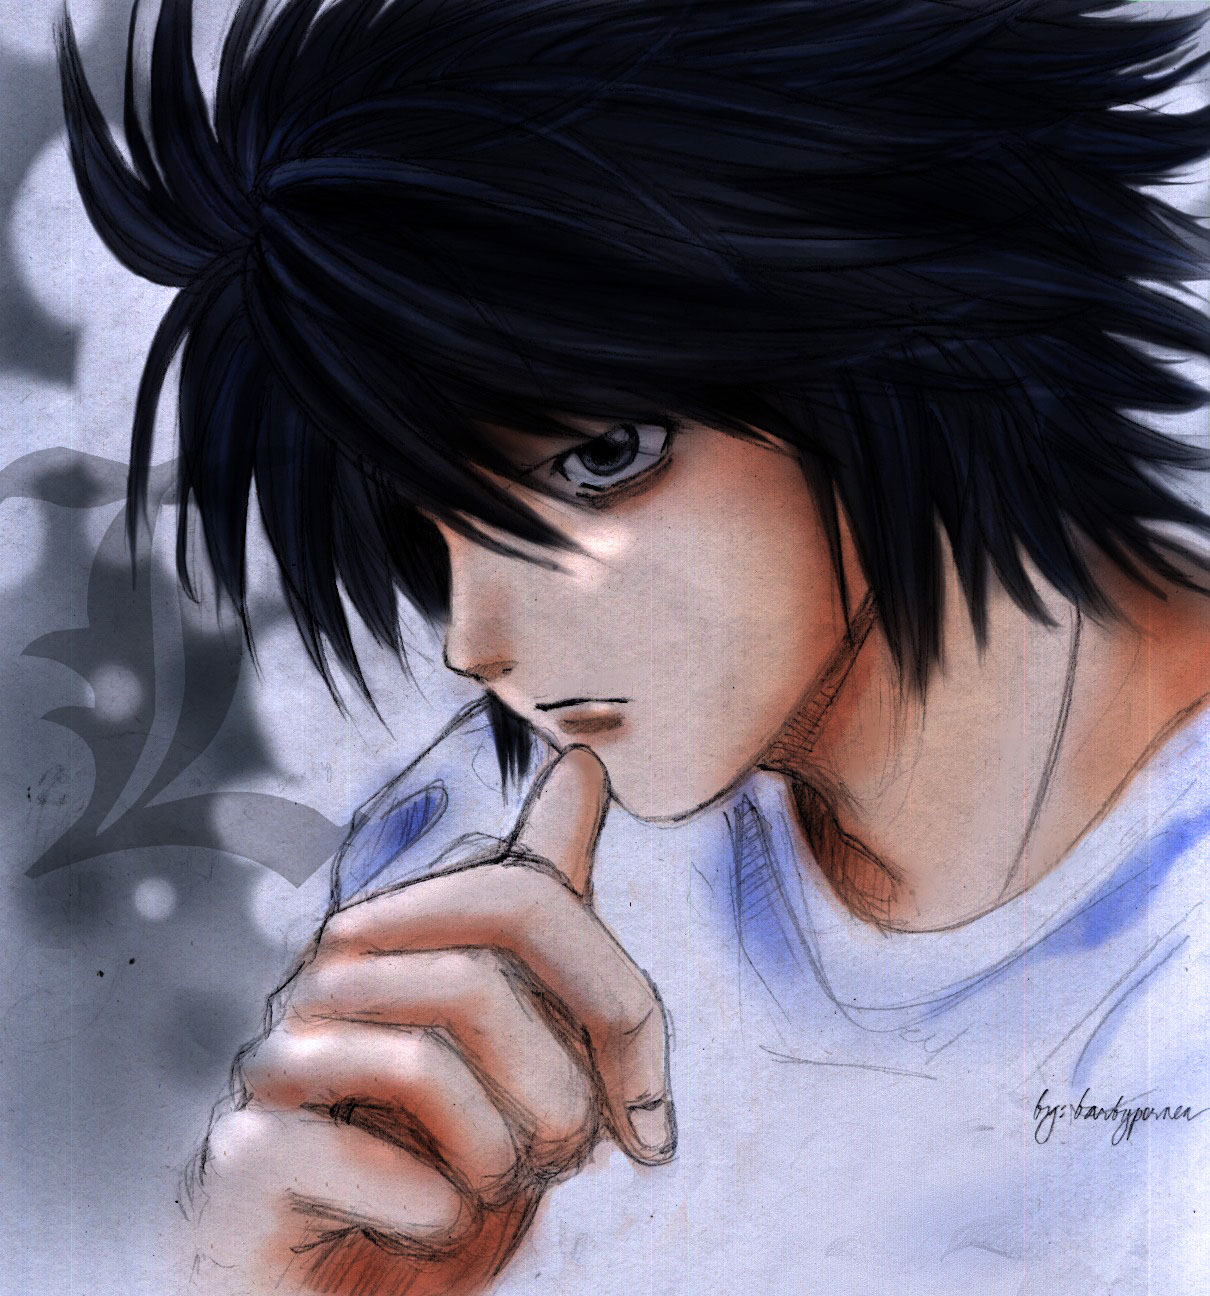 Changing my avatar  need good  L Death Note Avatar